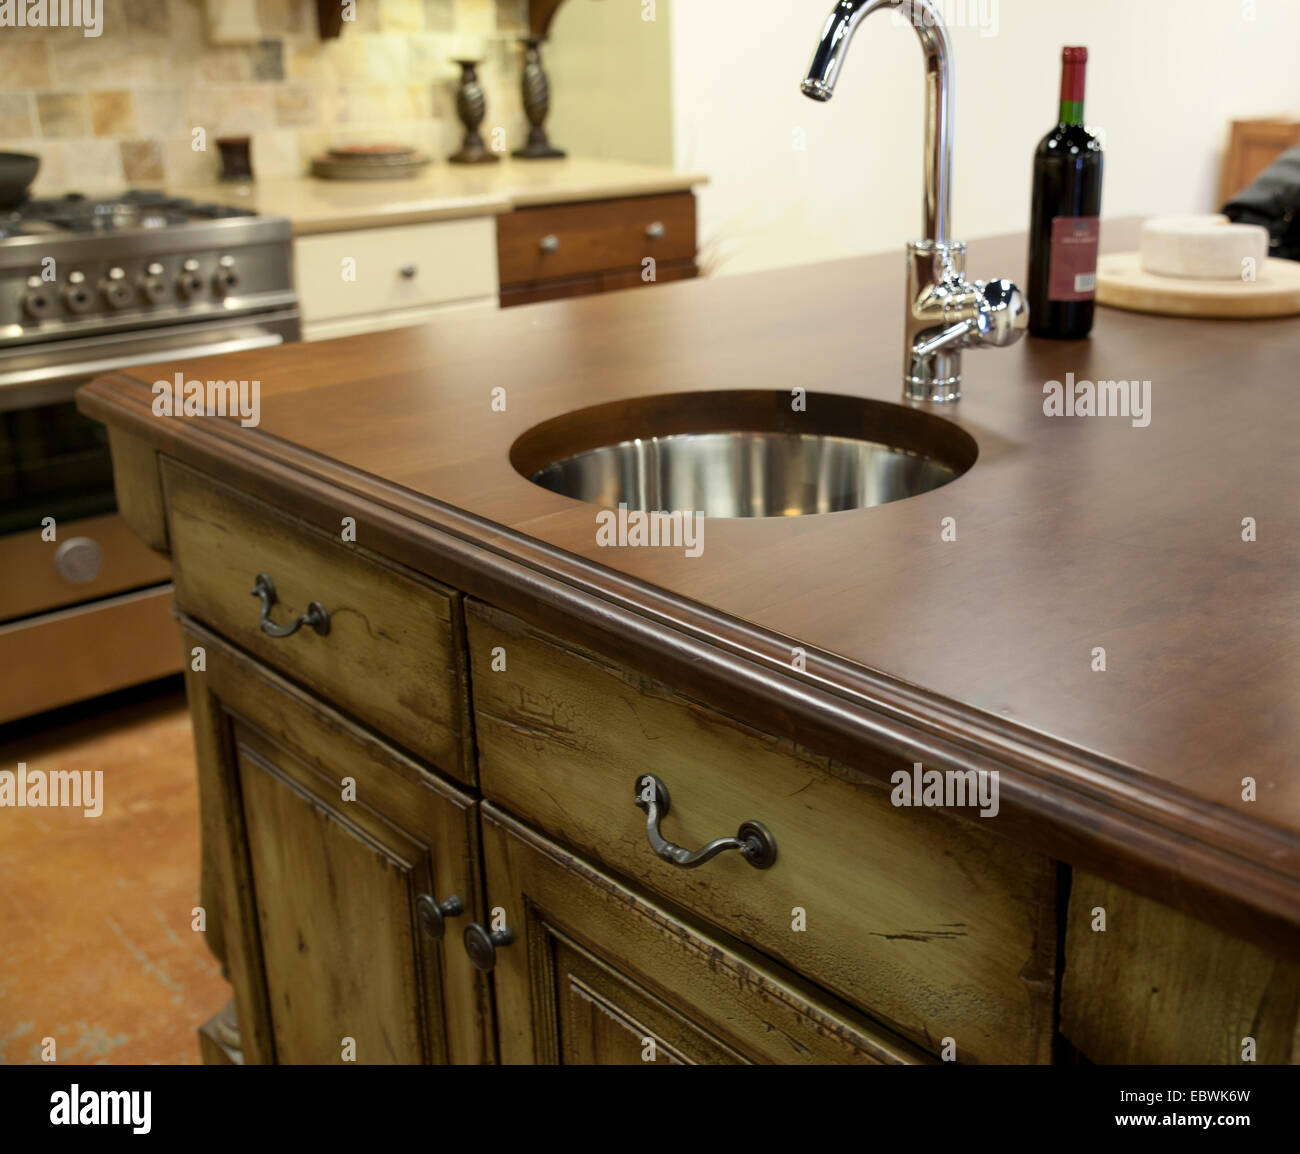 Stainless Countertop Distressed Kitchen Cabinets Wooden Countertop With Modern